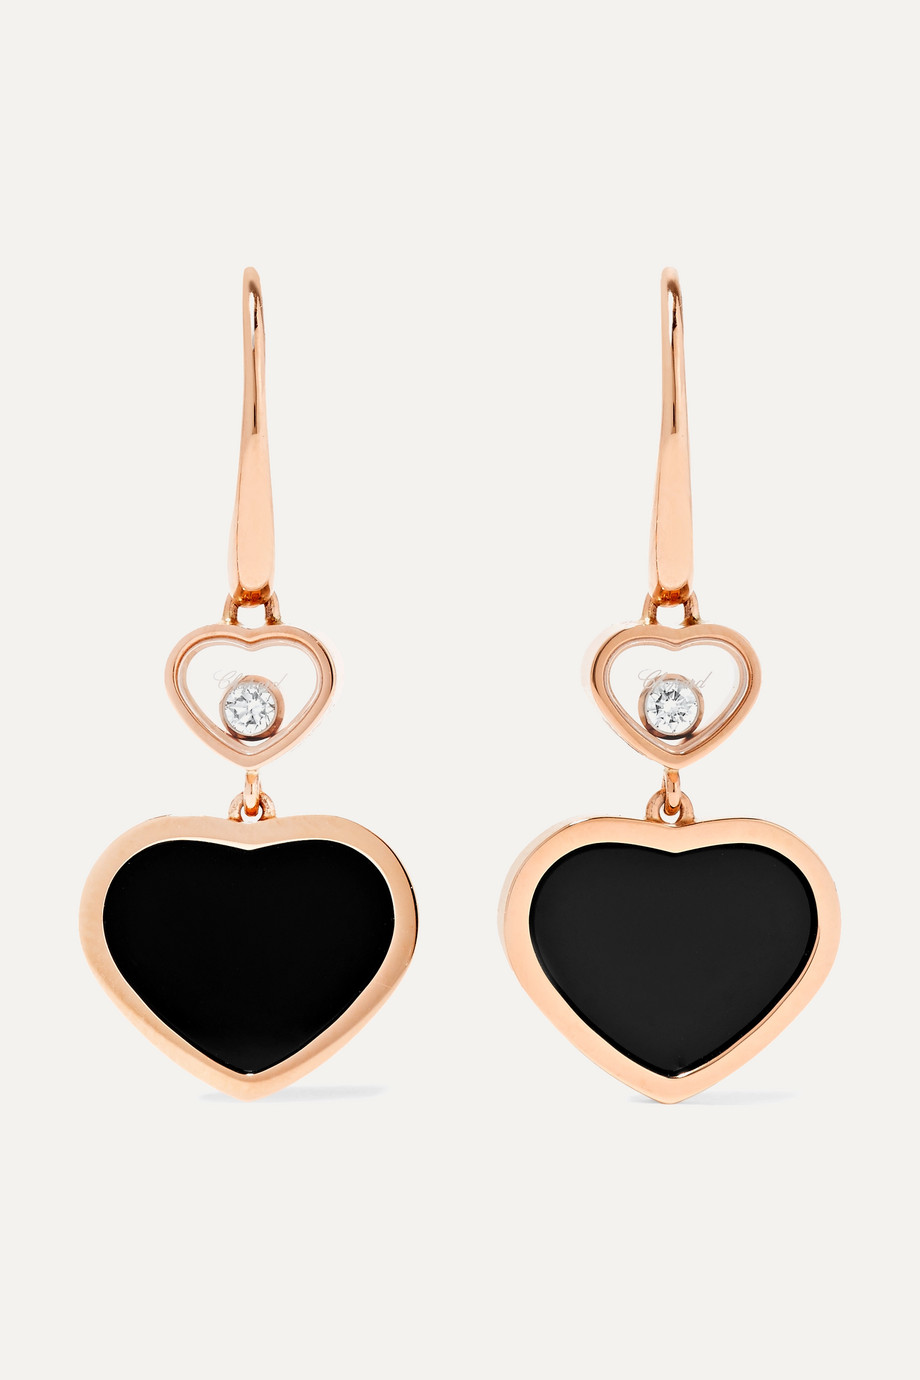 Chopard Boucles d'oreilles en or rose 18 carats, diamants et onyx Happy Hearts